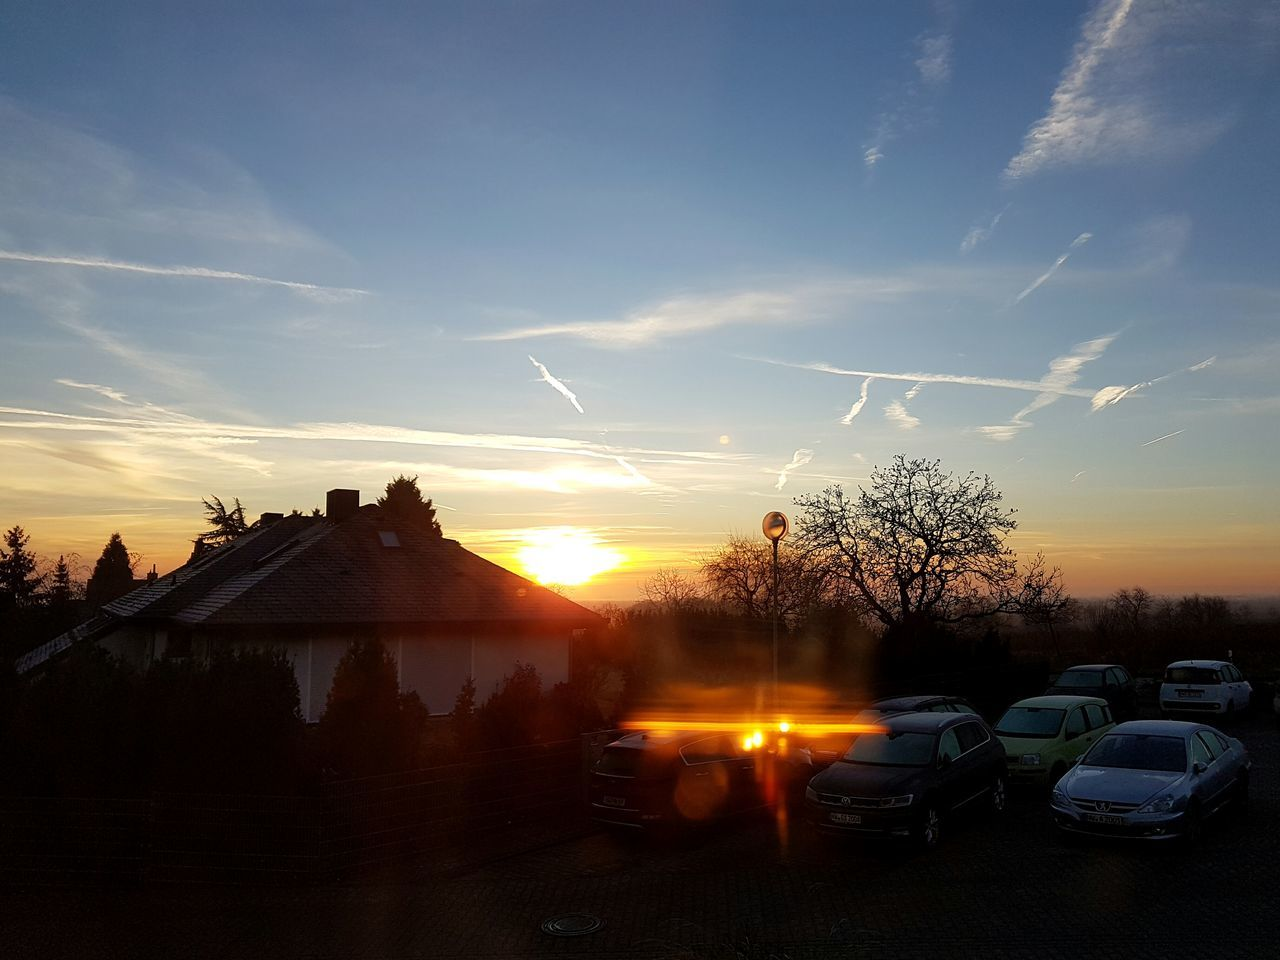 Sunset Outdoors Sky Day Morning Sun Morning Sky Sunlight First Cityscape Samsung Galaxy S7 Edge The Great Outdoors - 2016 EyeEm Awards My Year My View FirstEyeEmPic First Eyeem Photo Enjoy The New Normal Photographing The Photographer Landscape City Photography Themes